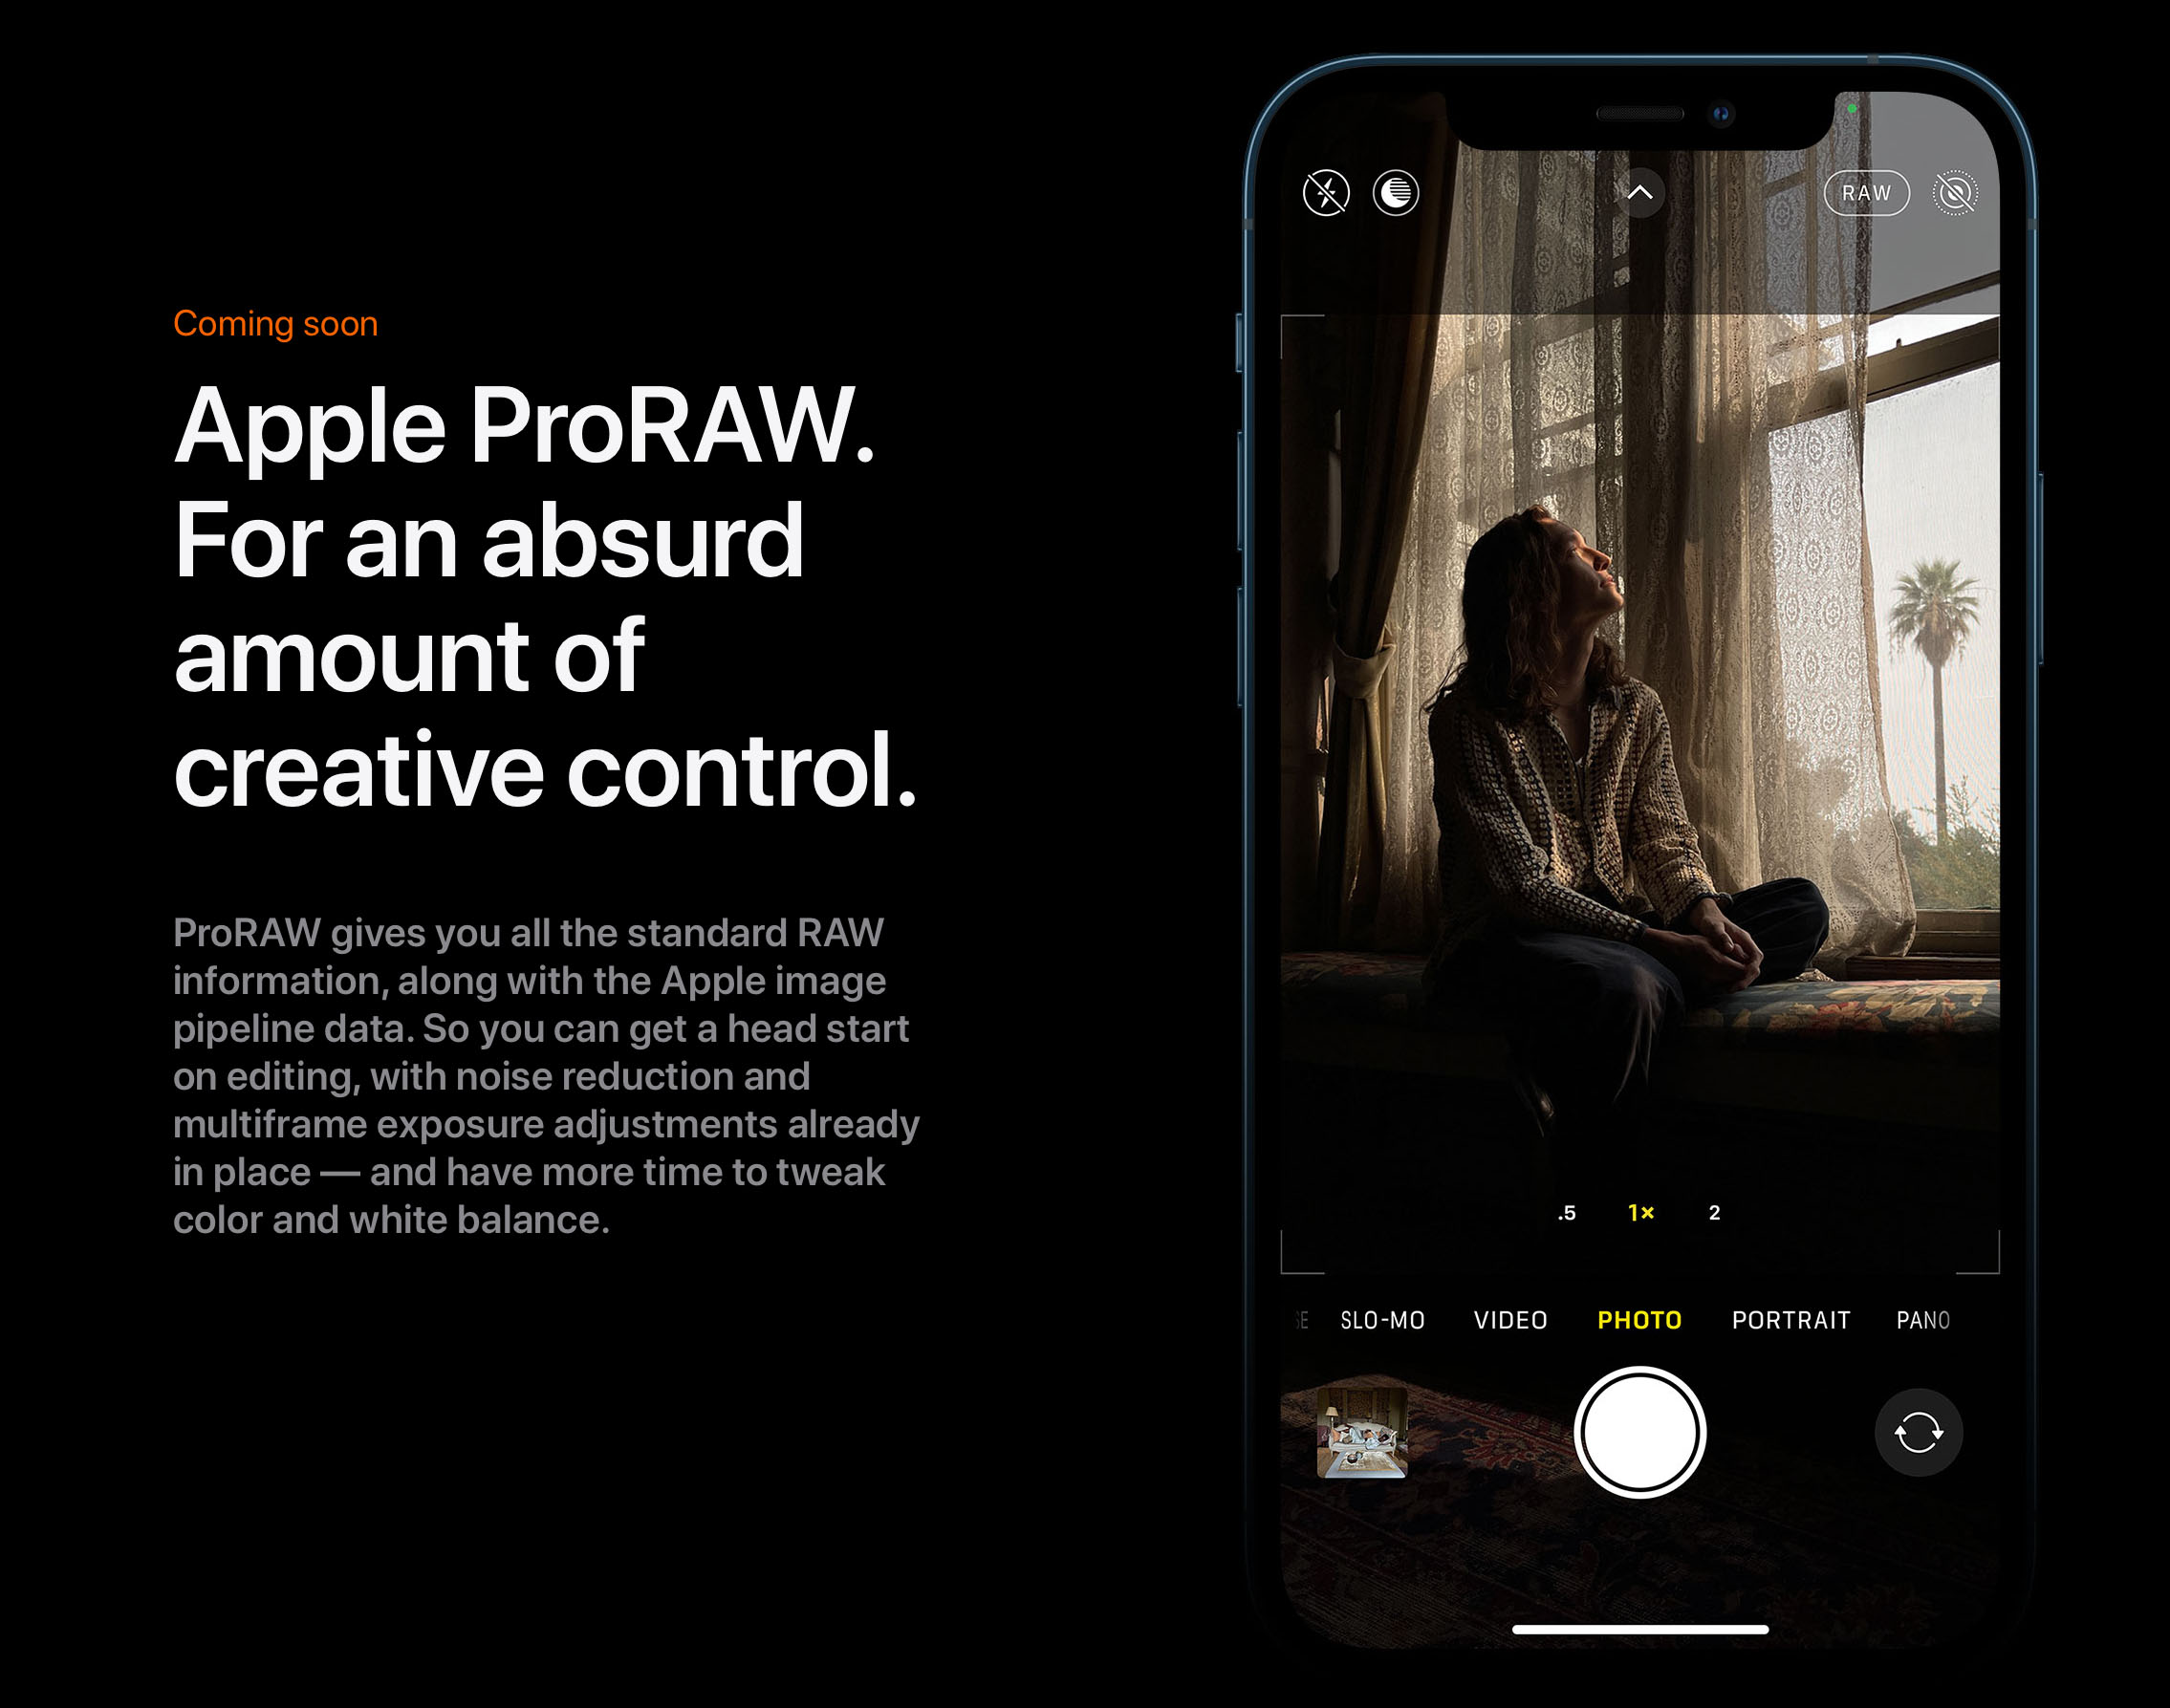 iPhone 12 Pro Max marches into enthusiast and pro photography territory  with new Apple ProRAW, LIDAR, Dolby Vision and large sensor - EOSHD.com -  Filmmaking Gear and Camera Reviews